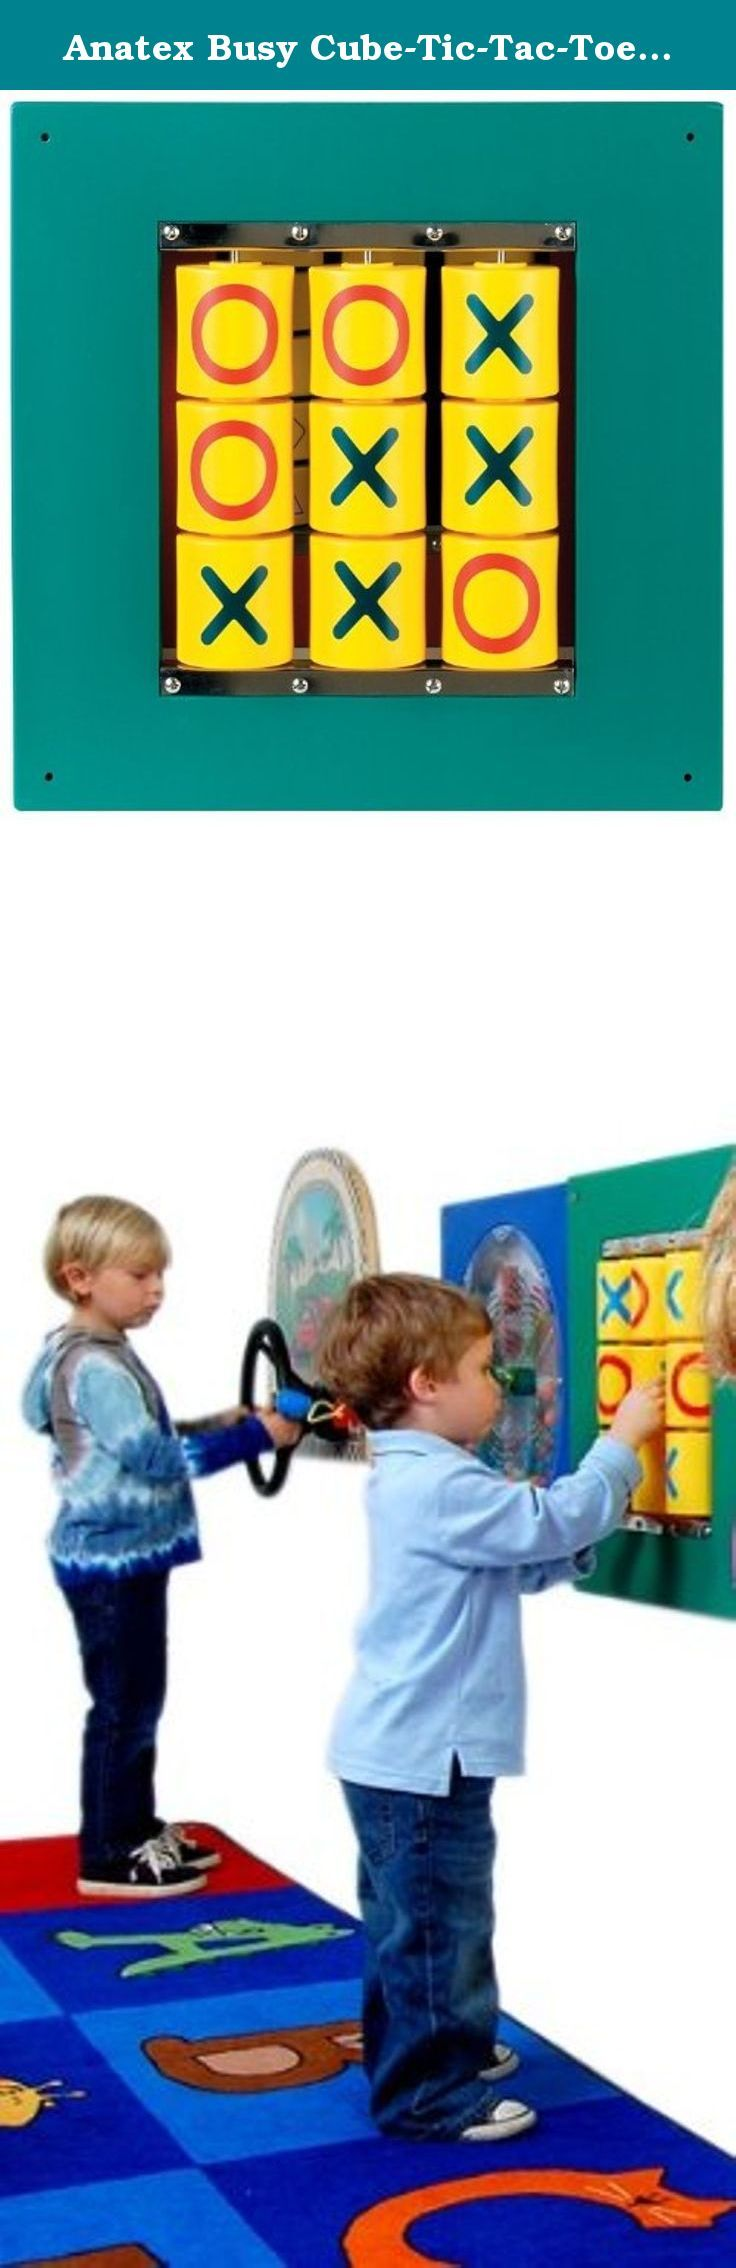 """Anatex Busy Cube-Tic-Tac-Toe Wall Panel. This children's classic offers great traditional fun in a durable and easy care panel game. The panel can be wall mounted for use in a playroom, child care setting or child's bedroom, or it can serve as part of a busy cube or play table for your child. Tic-tac-toe is great practice for logical thinking, and turn taking for your kids. The 20"""" by 20"""" Childrens Tic-Tac-Toe Wall Panel displays 9 yellow easy turn 'X' and 'O' cylinders on a soothing dark..."""